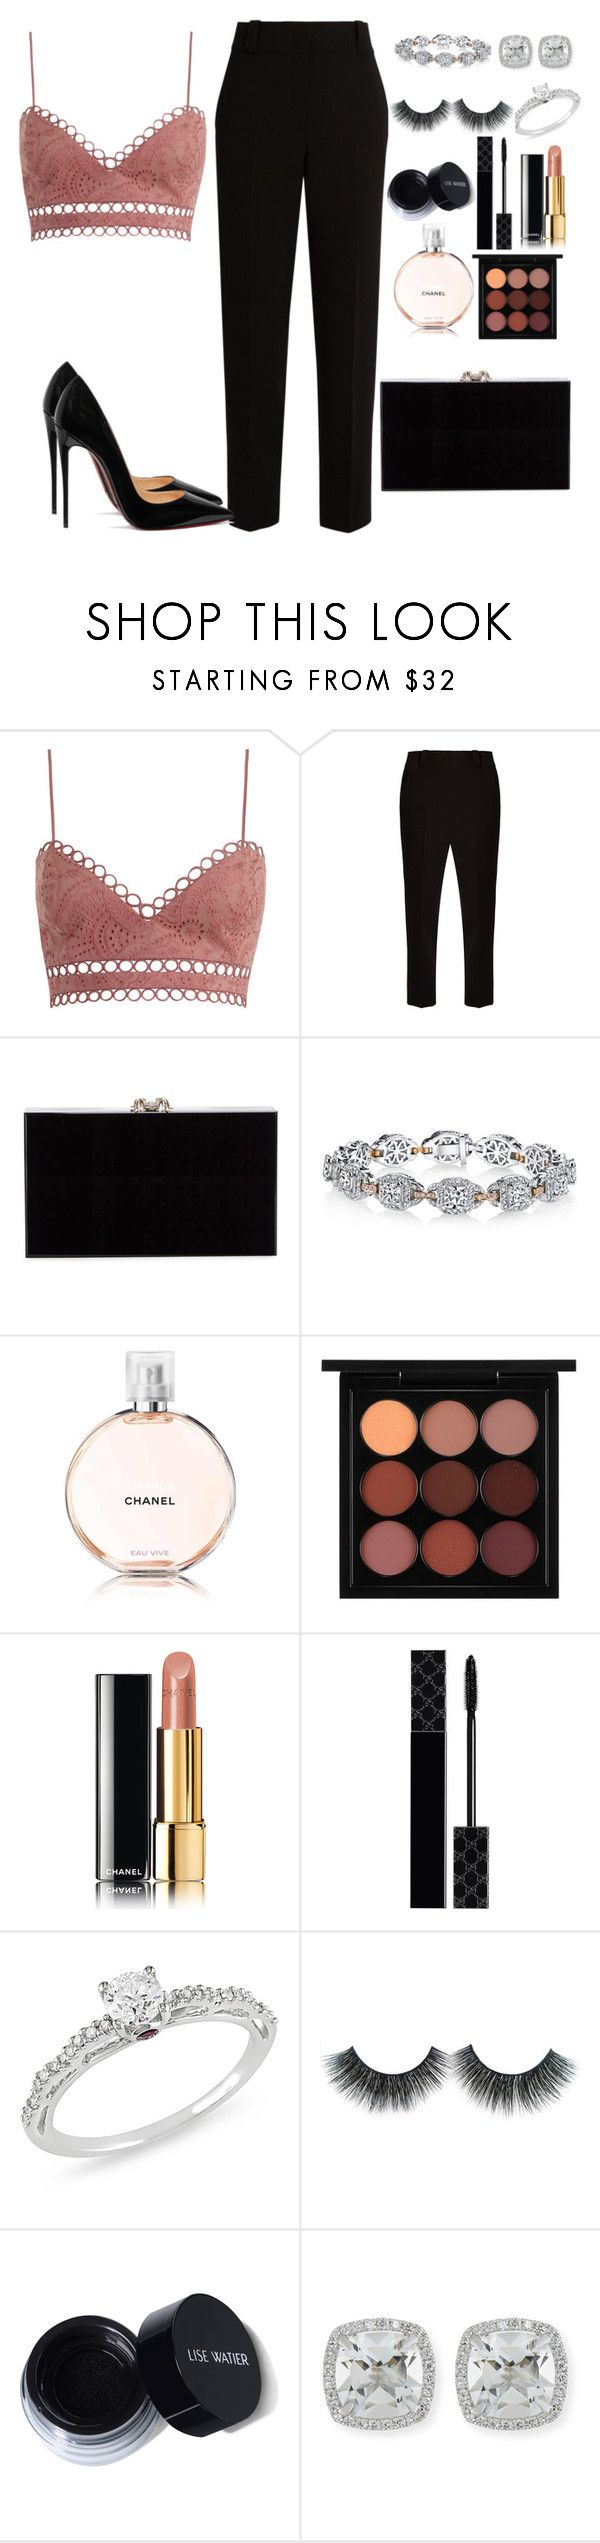 """center of attention once again"" by meli3108 ❤ liked on Polyvore featuring Zimmermann, The Row, Charlotte Olympia, Harry Kotlar, MAC Cosmetics, Chanel, Gucci, Ice, Frederic Sage and Christian Louboutin"